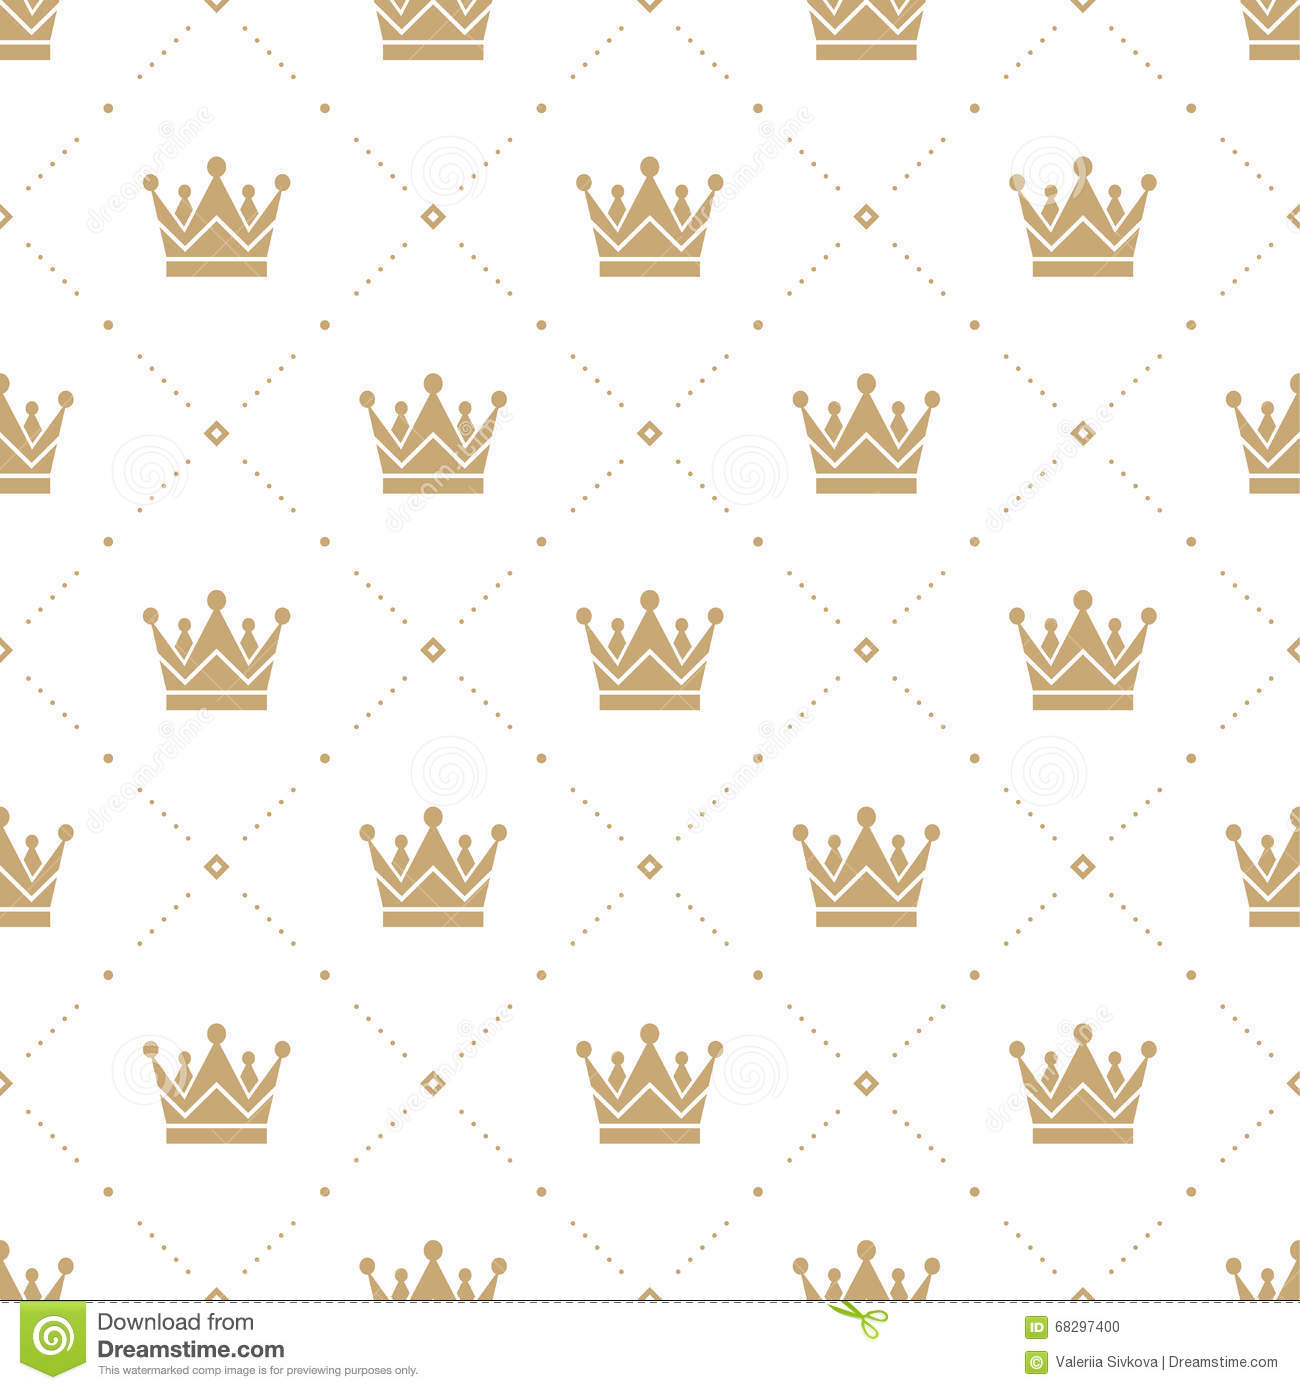 Gold crown background - photo#6